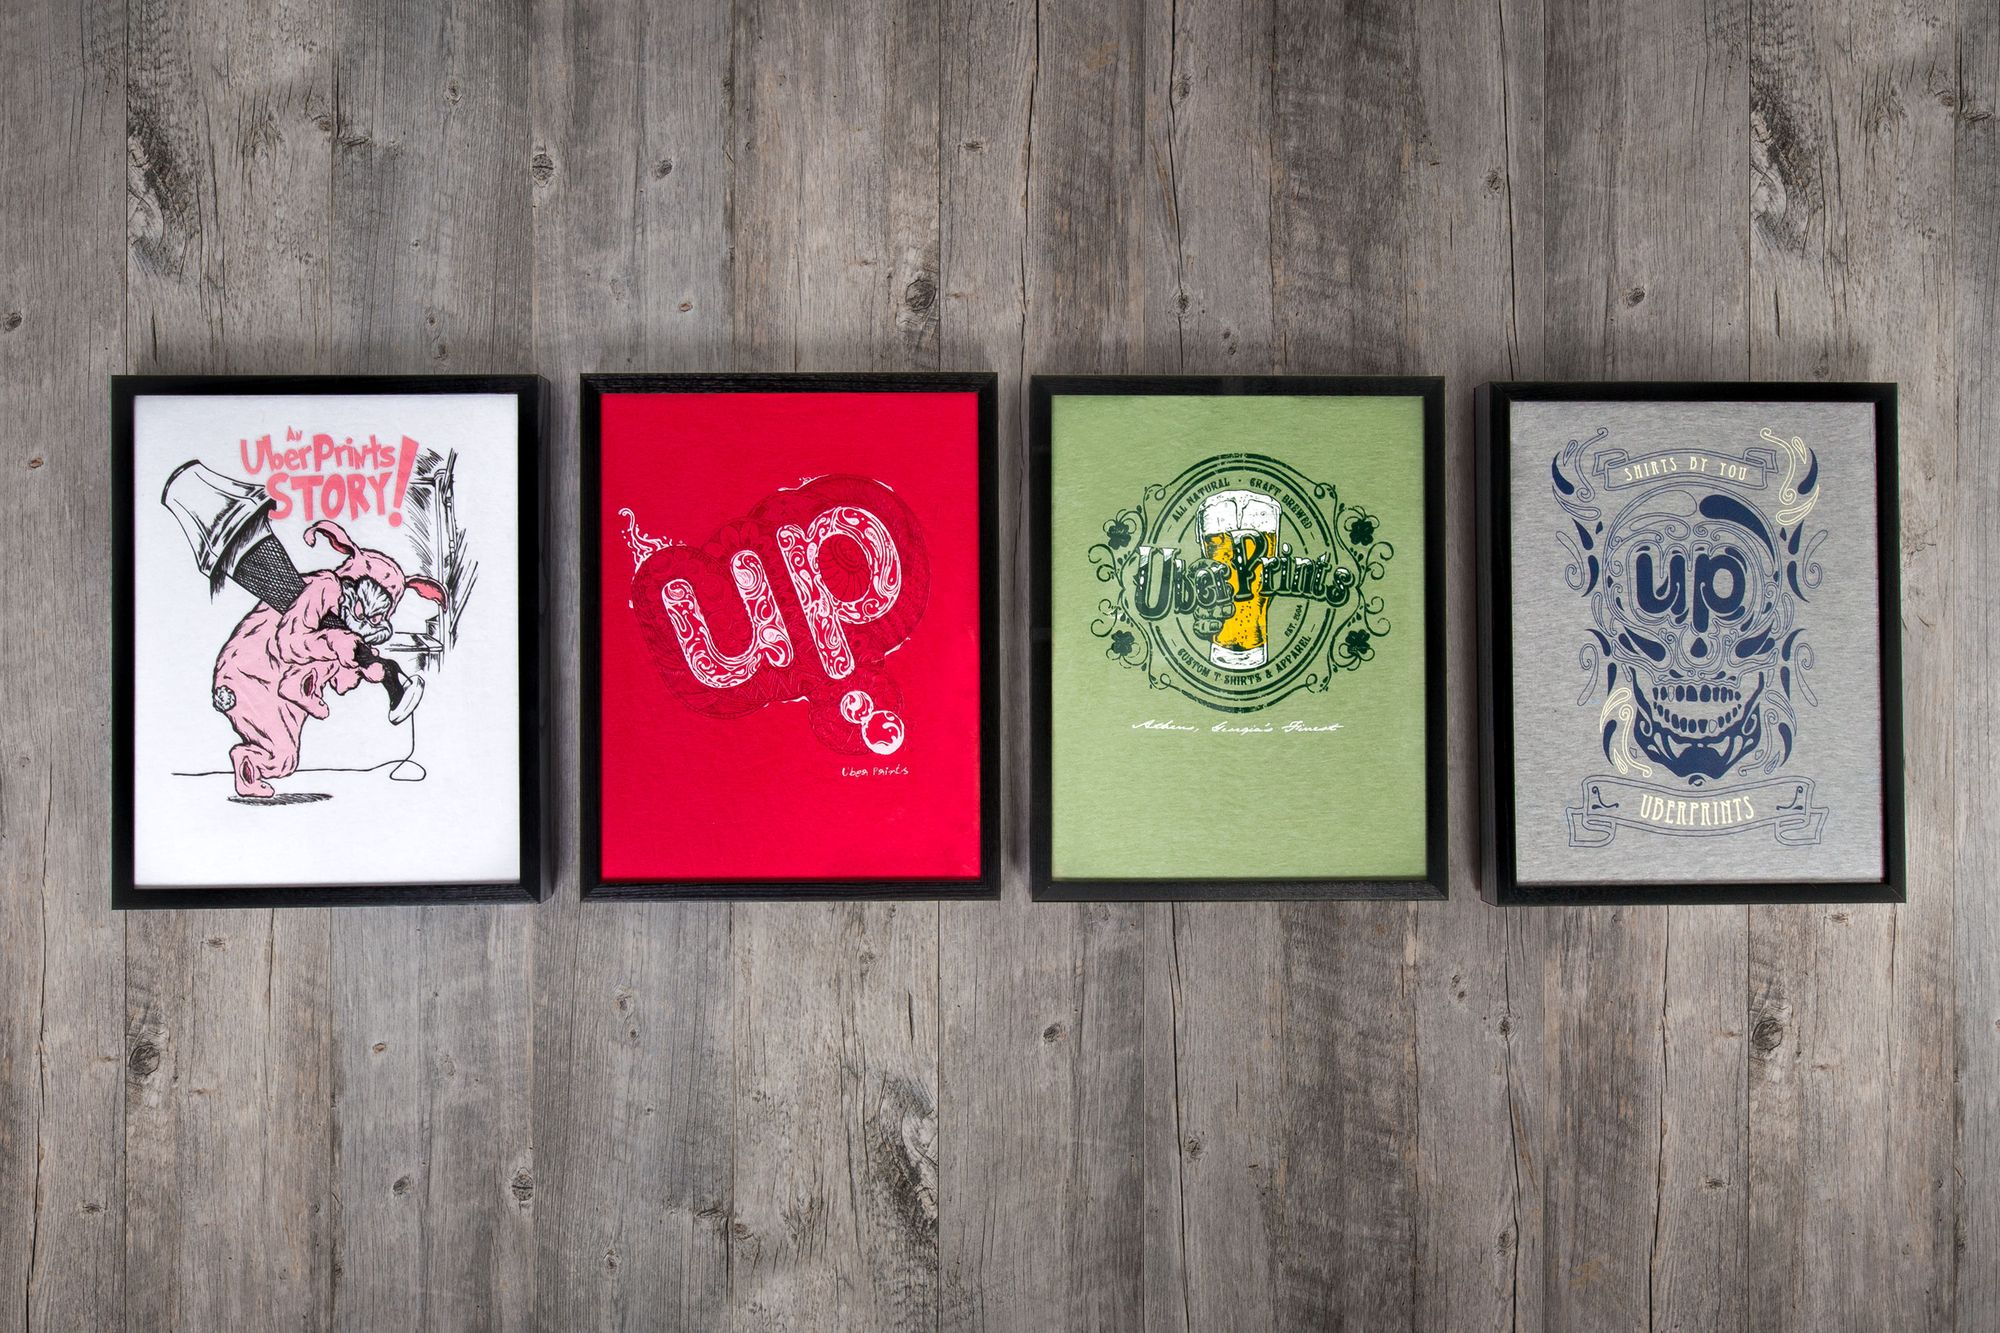 Four t-shirt designs made by Tommie.